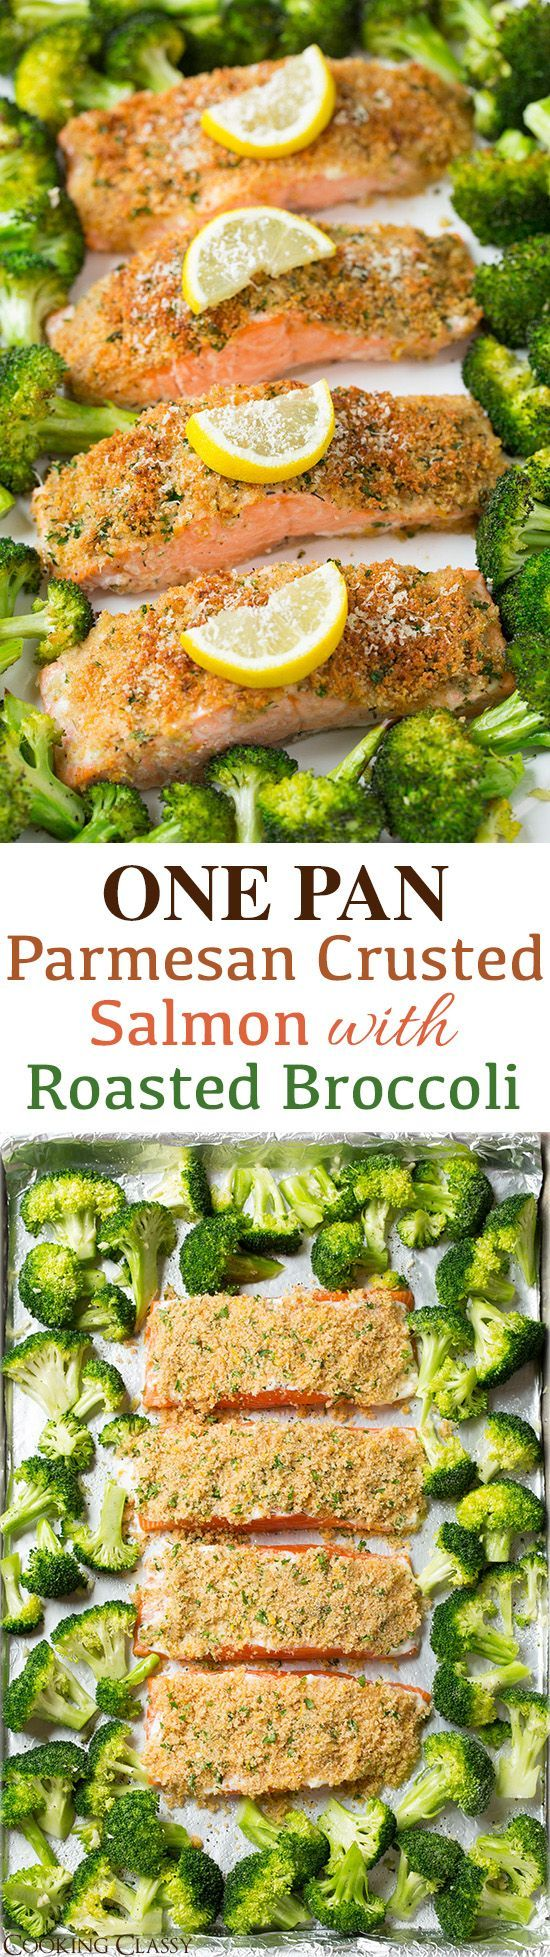 Parmesan Crusted Salmon with Roasted Broccoli - everything is roasted together on one pan so clean up is a breeze! Crust the Salmon with Sour Cream and Onion Quest Protein Chips for a delicious taste packed with protein and flavors!